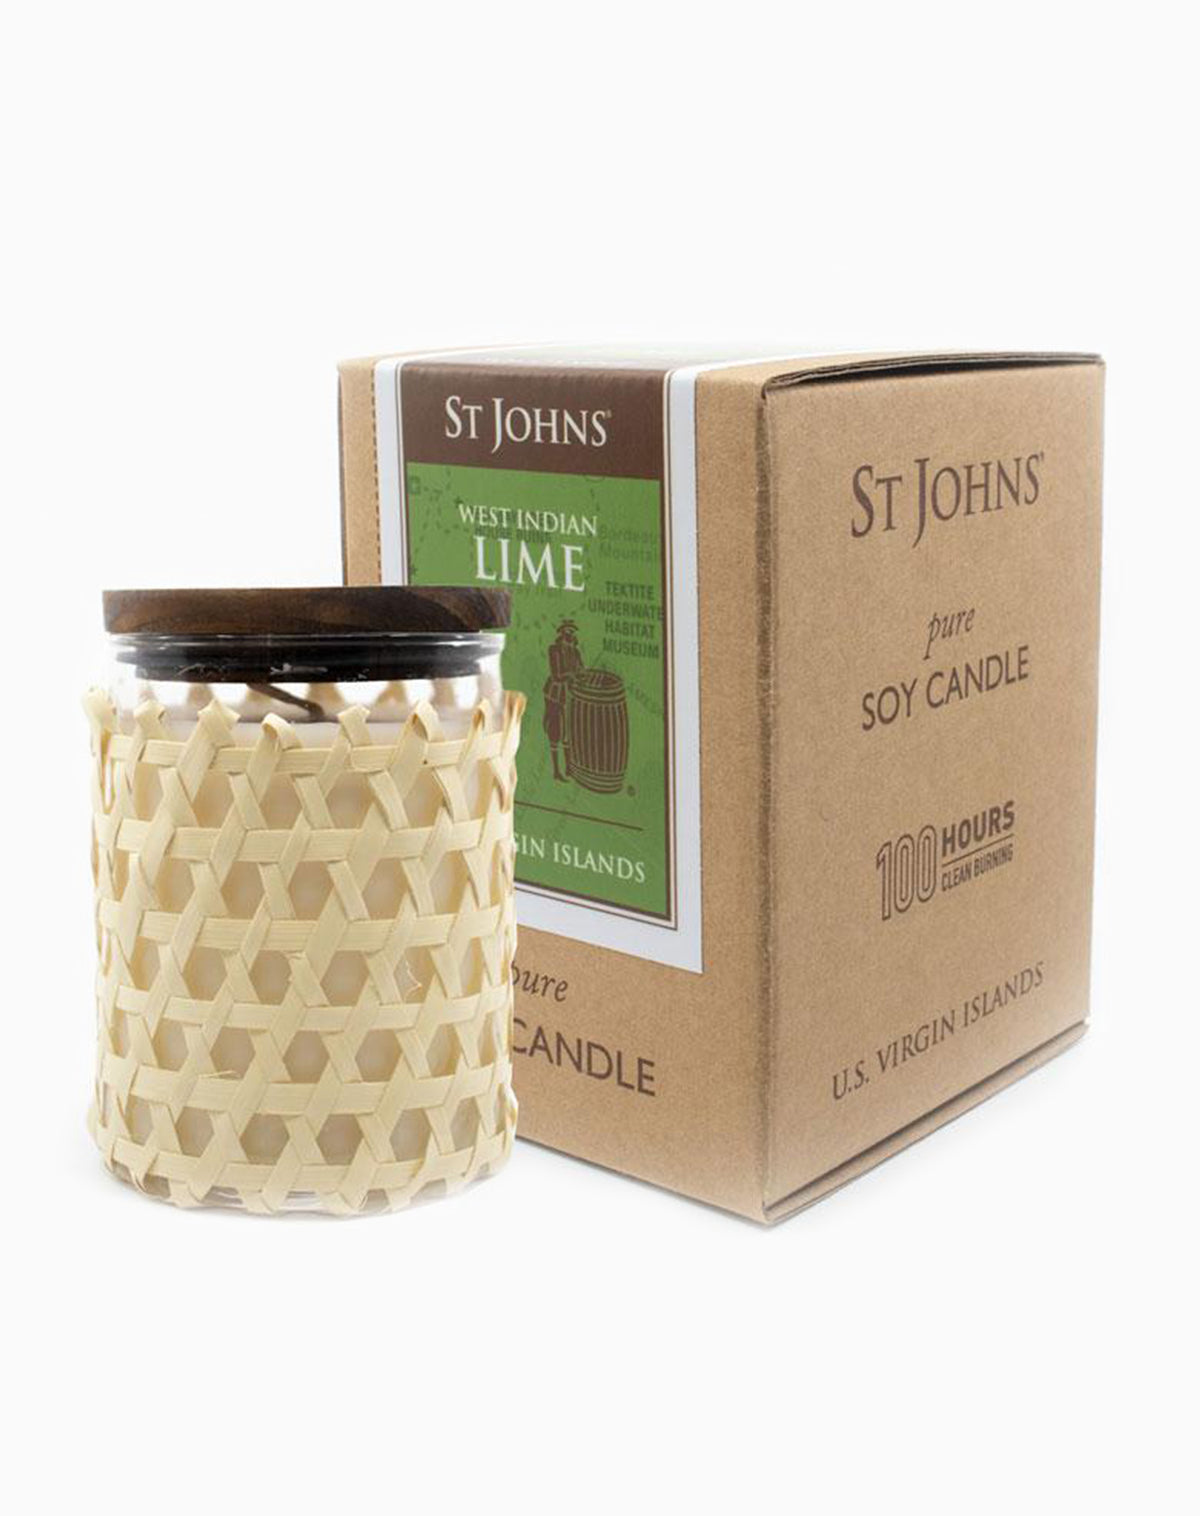 St Johns West Indian Lime Soy Candle